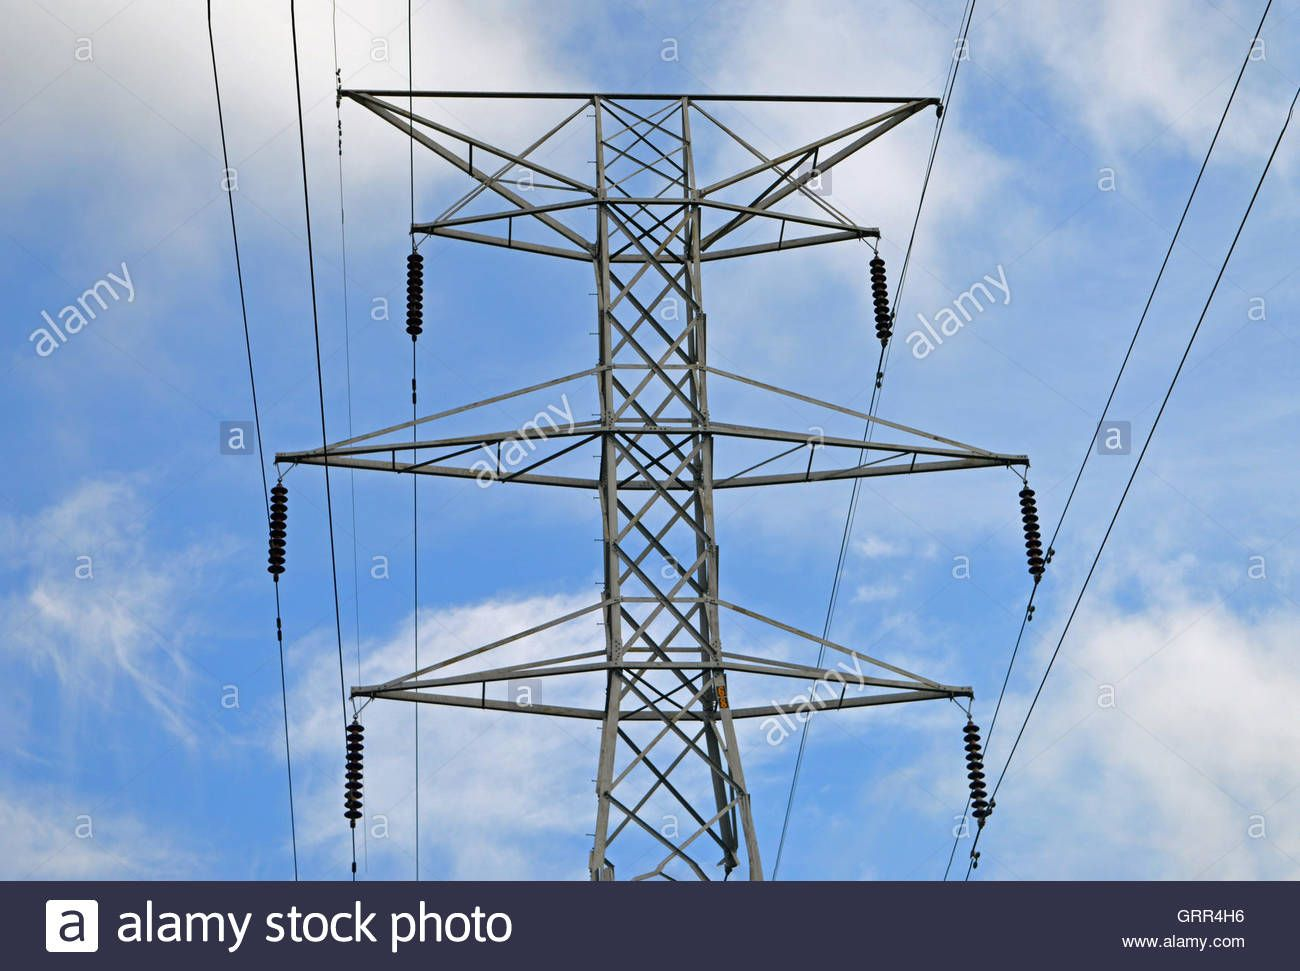 Pin By Tyler On Transmission Towers Transmission Tower High